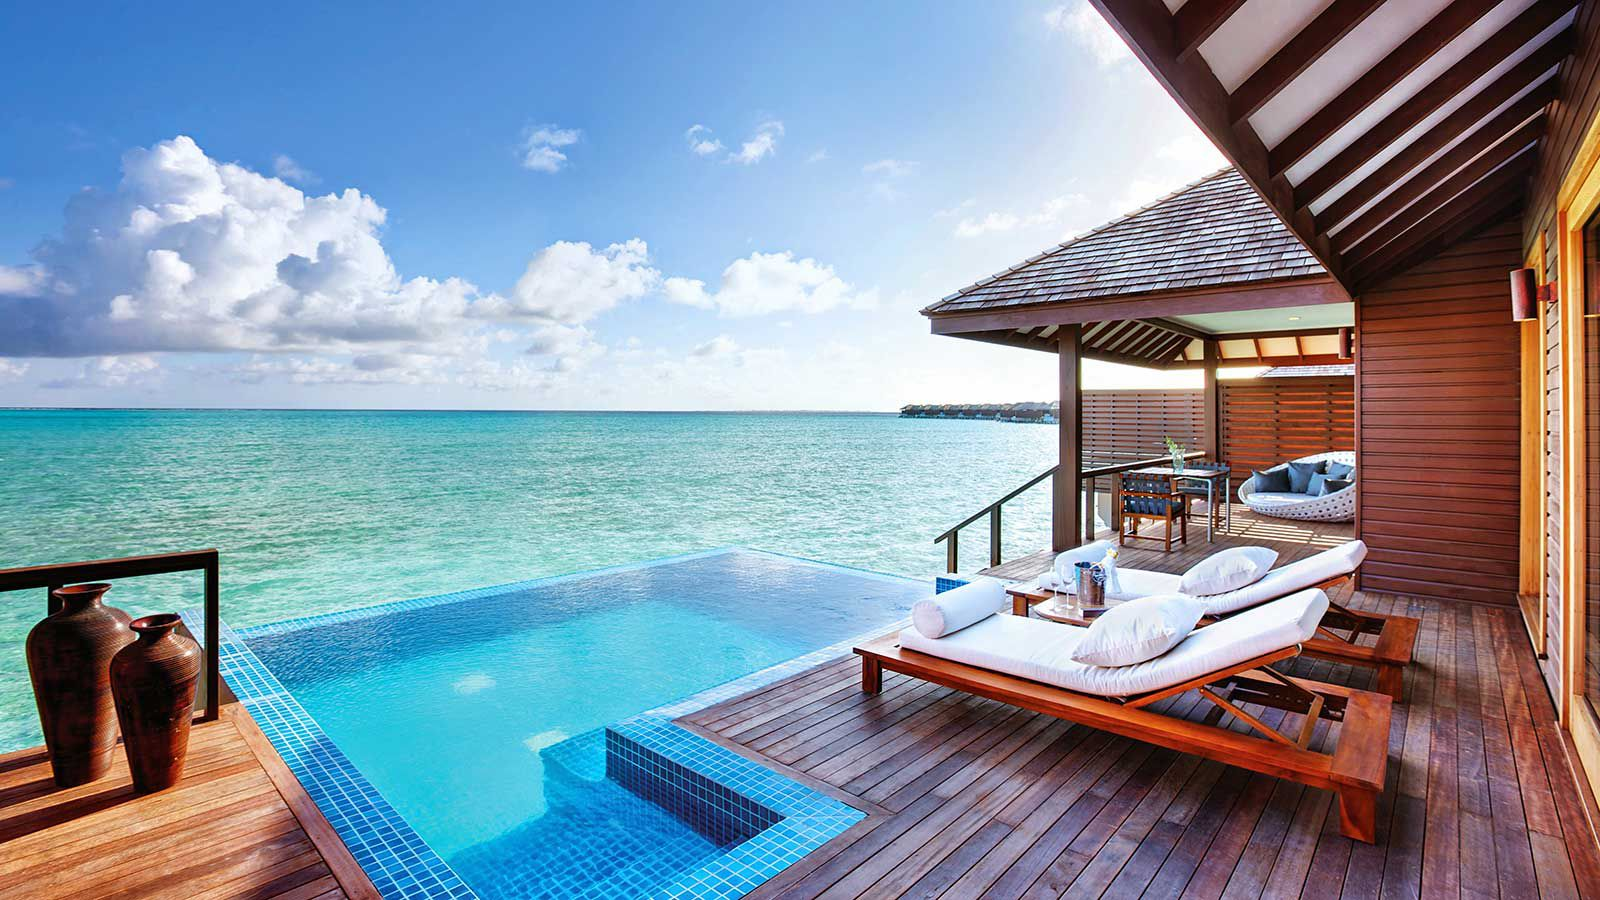 Maldives Deluxe Water Villa Luxury Pool Villas Maldives